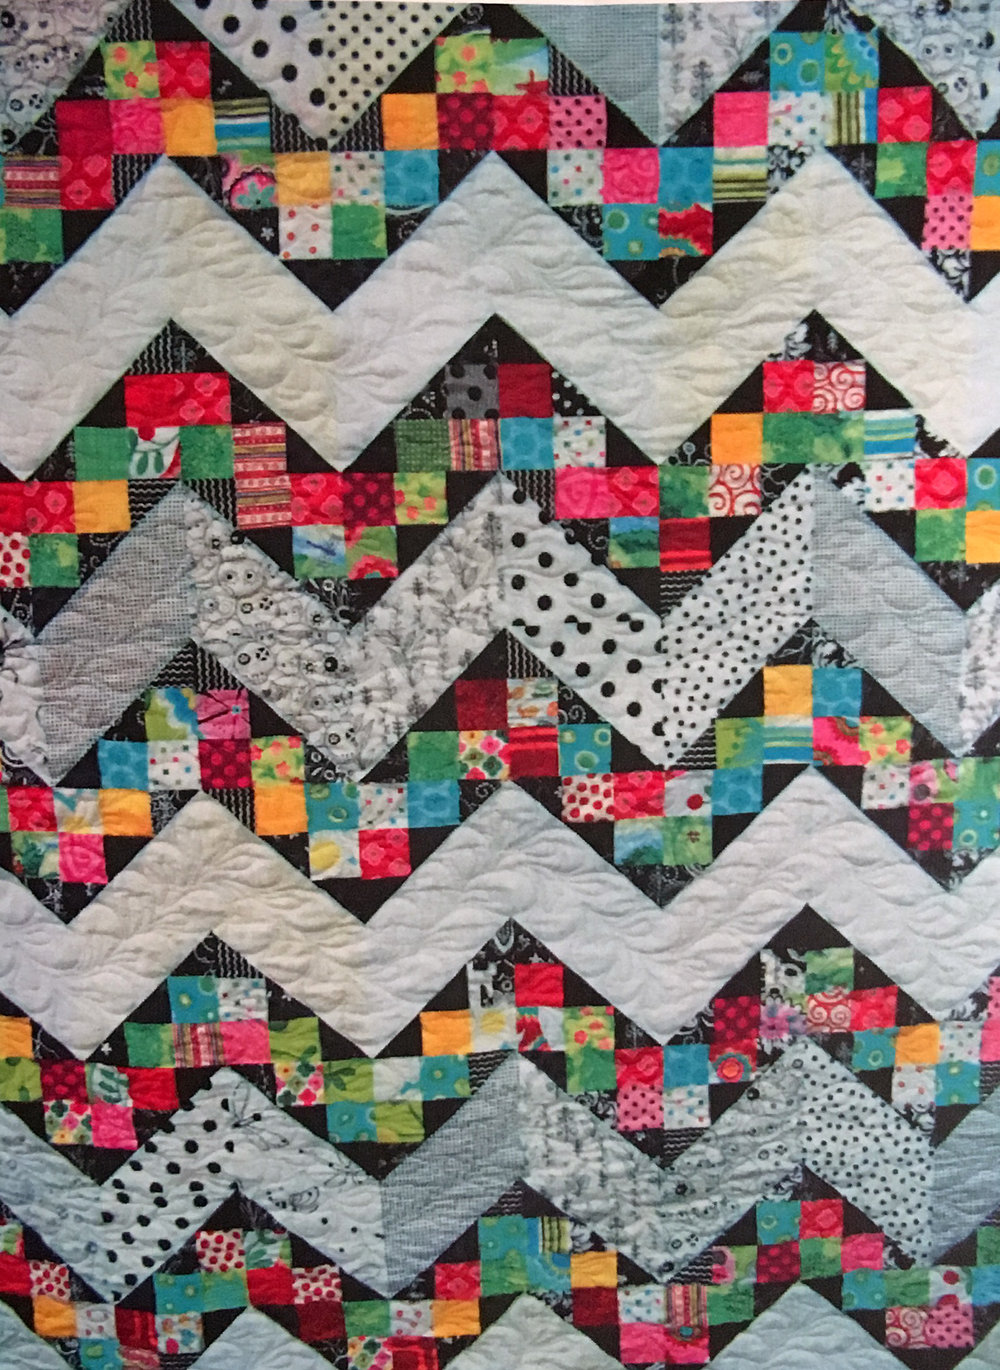 This quilt top puts a twist on the traditional chevron. You'll need 3 yards white or light colored fabric (use up those light colored prints!), 1.5 yards black or dark colored fabric, 2 yards assorted prints (for the colored blocks inside the chevron.)   $40